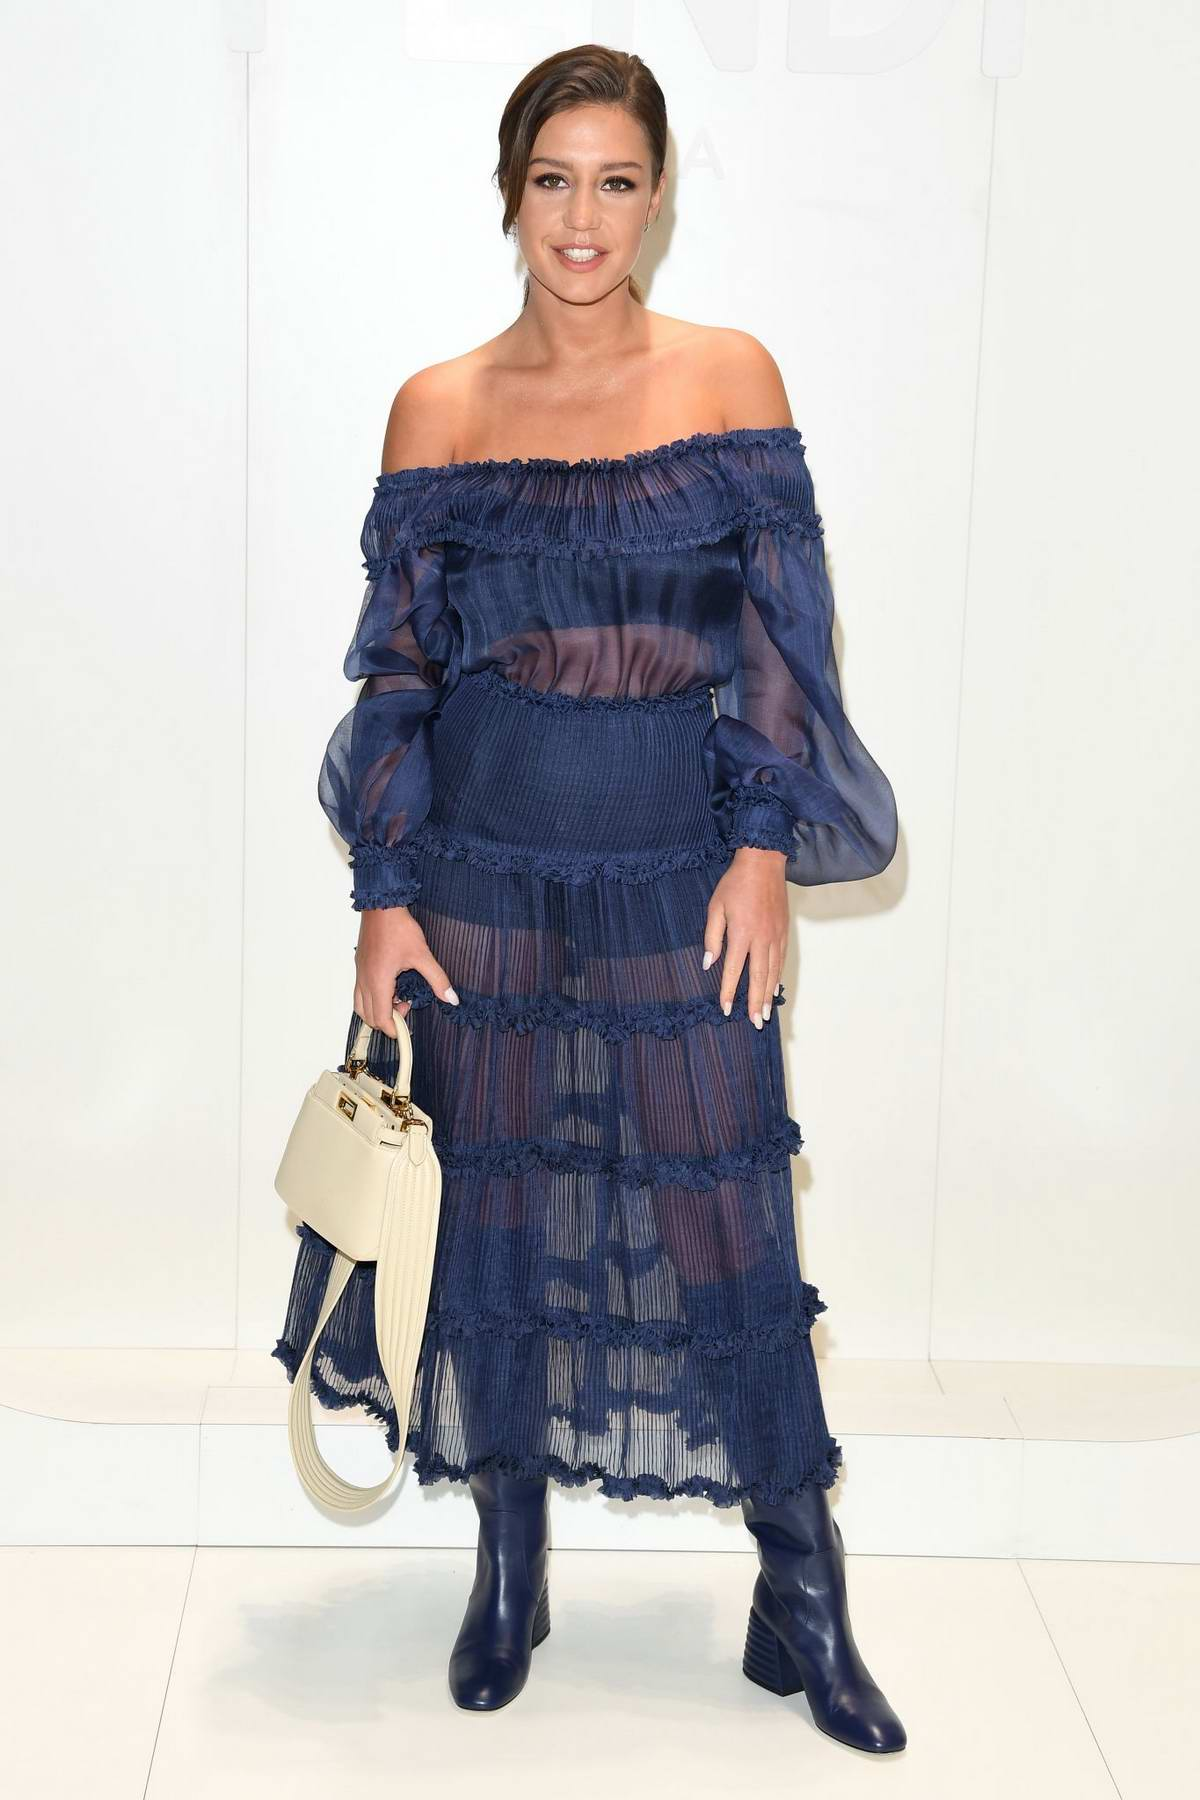 Adele Exarchopoulos attends the Fendi F/W 2020 Fashion Show during Milan Fashion Week Men's in Milan, Italy